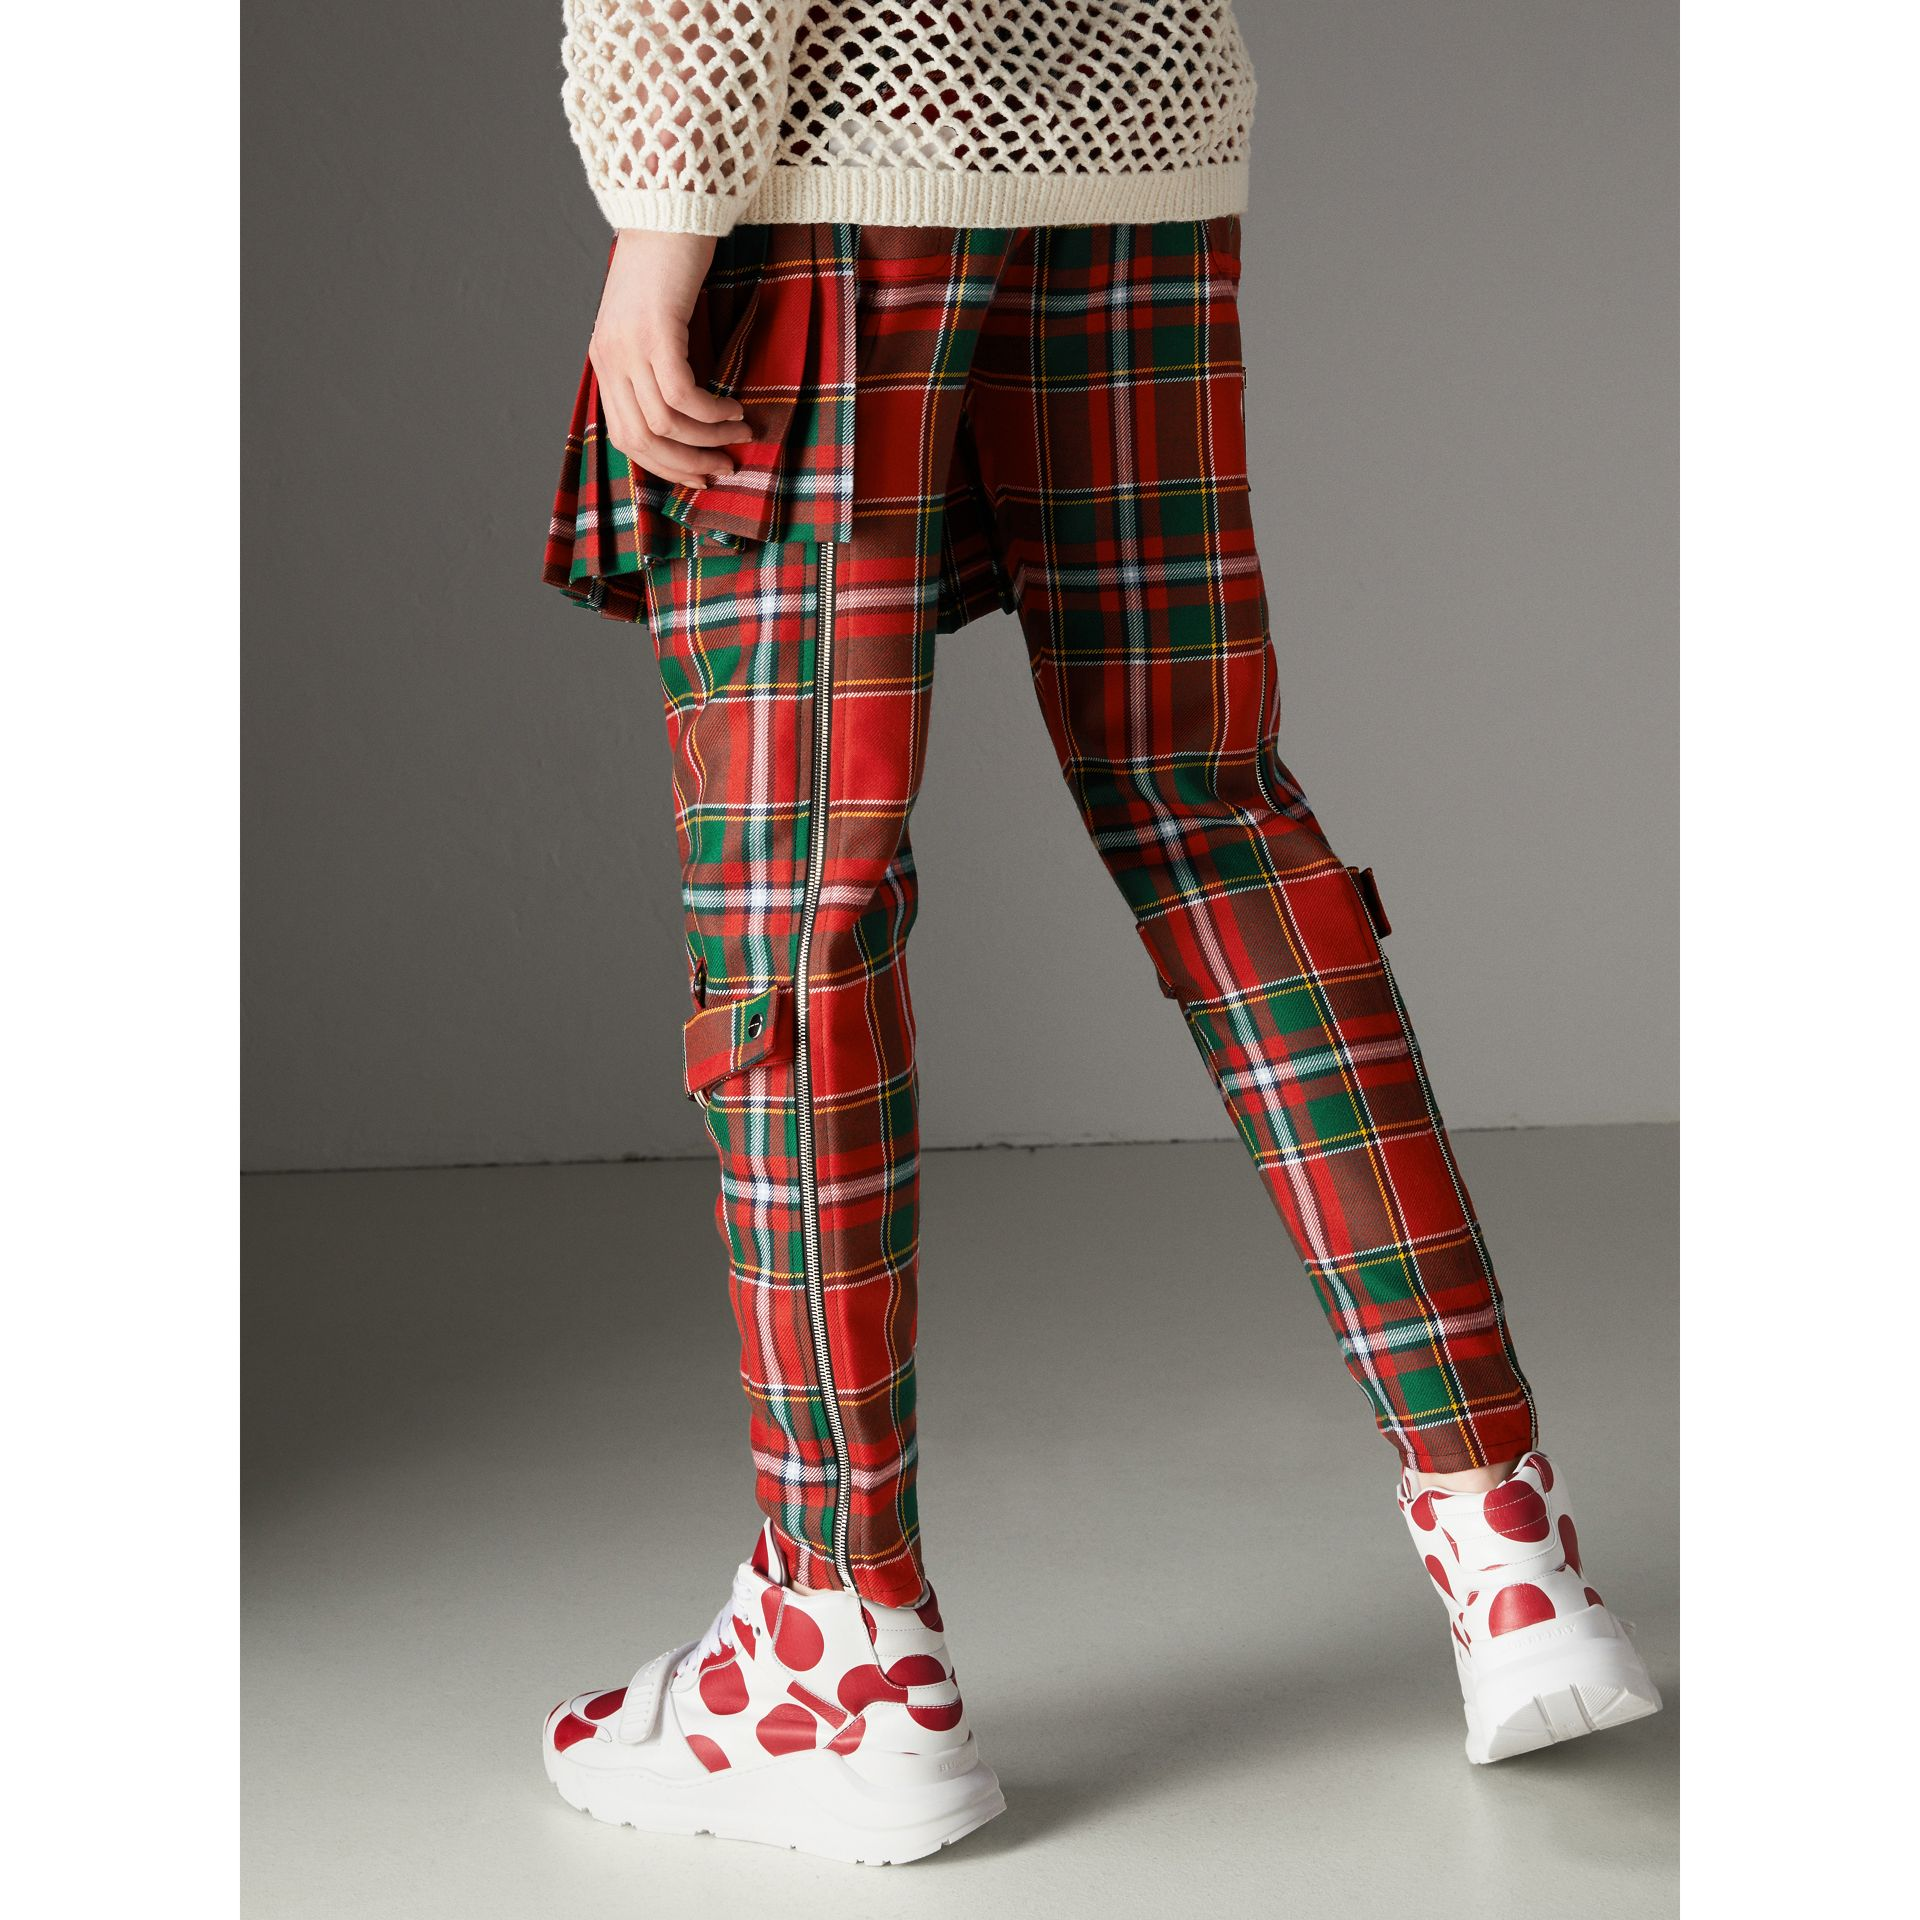 Pantalon punk en tartan Modern Stewart Royal (Rouge Vif) - Femme | Burberry - photo de la galerie 2